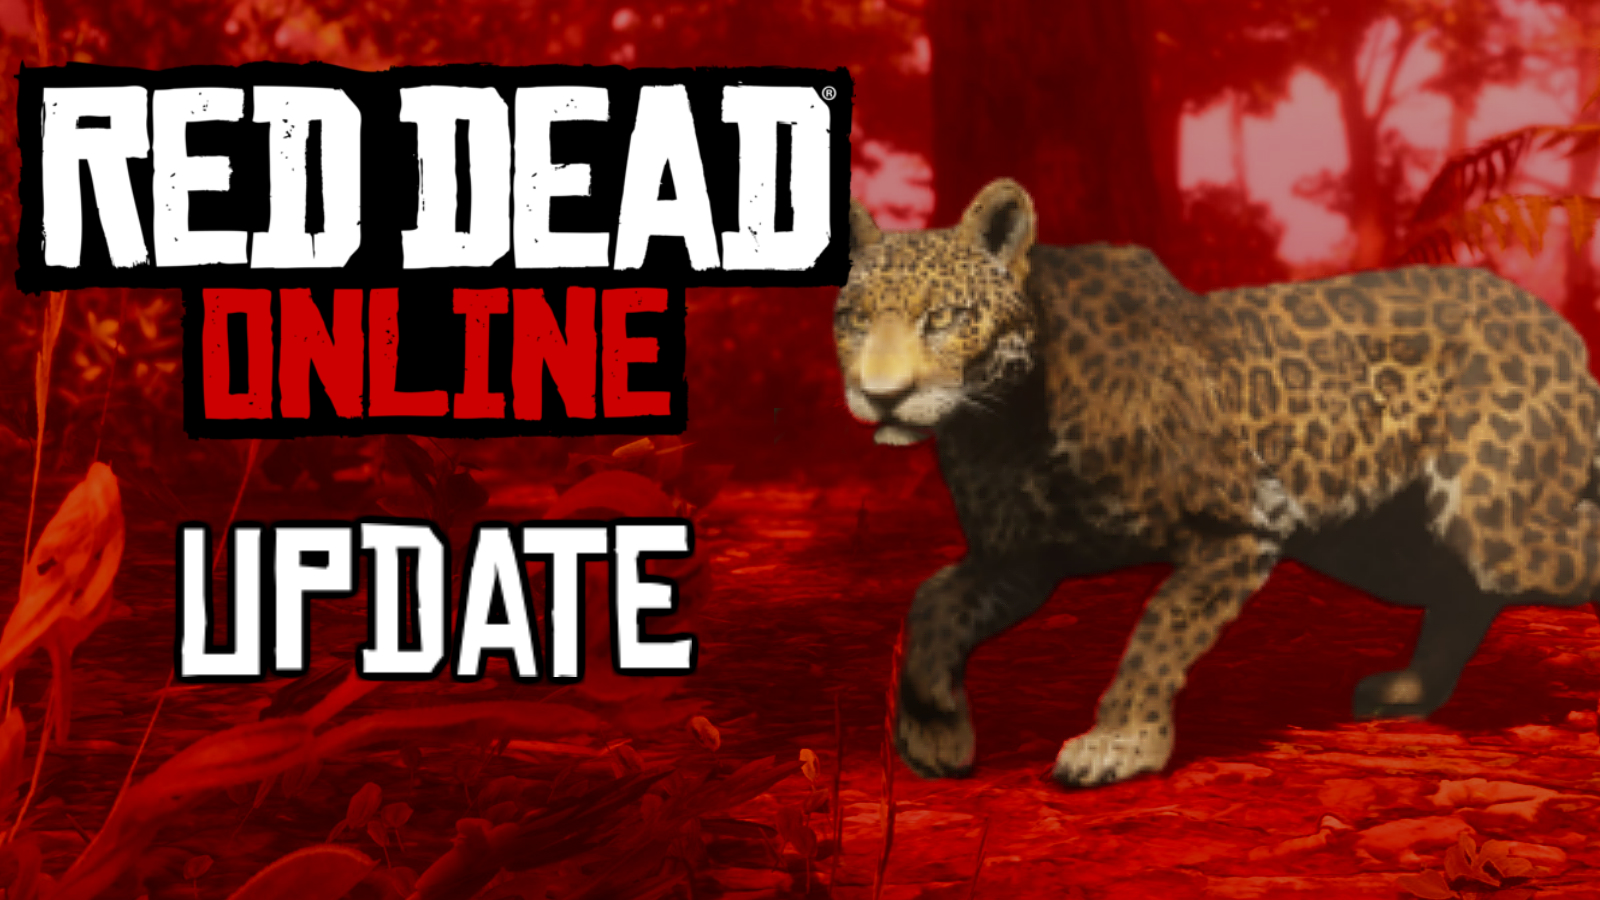 Red Dead Online logo with red background